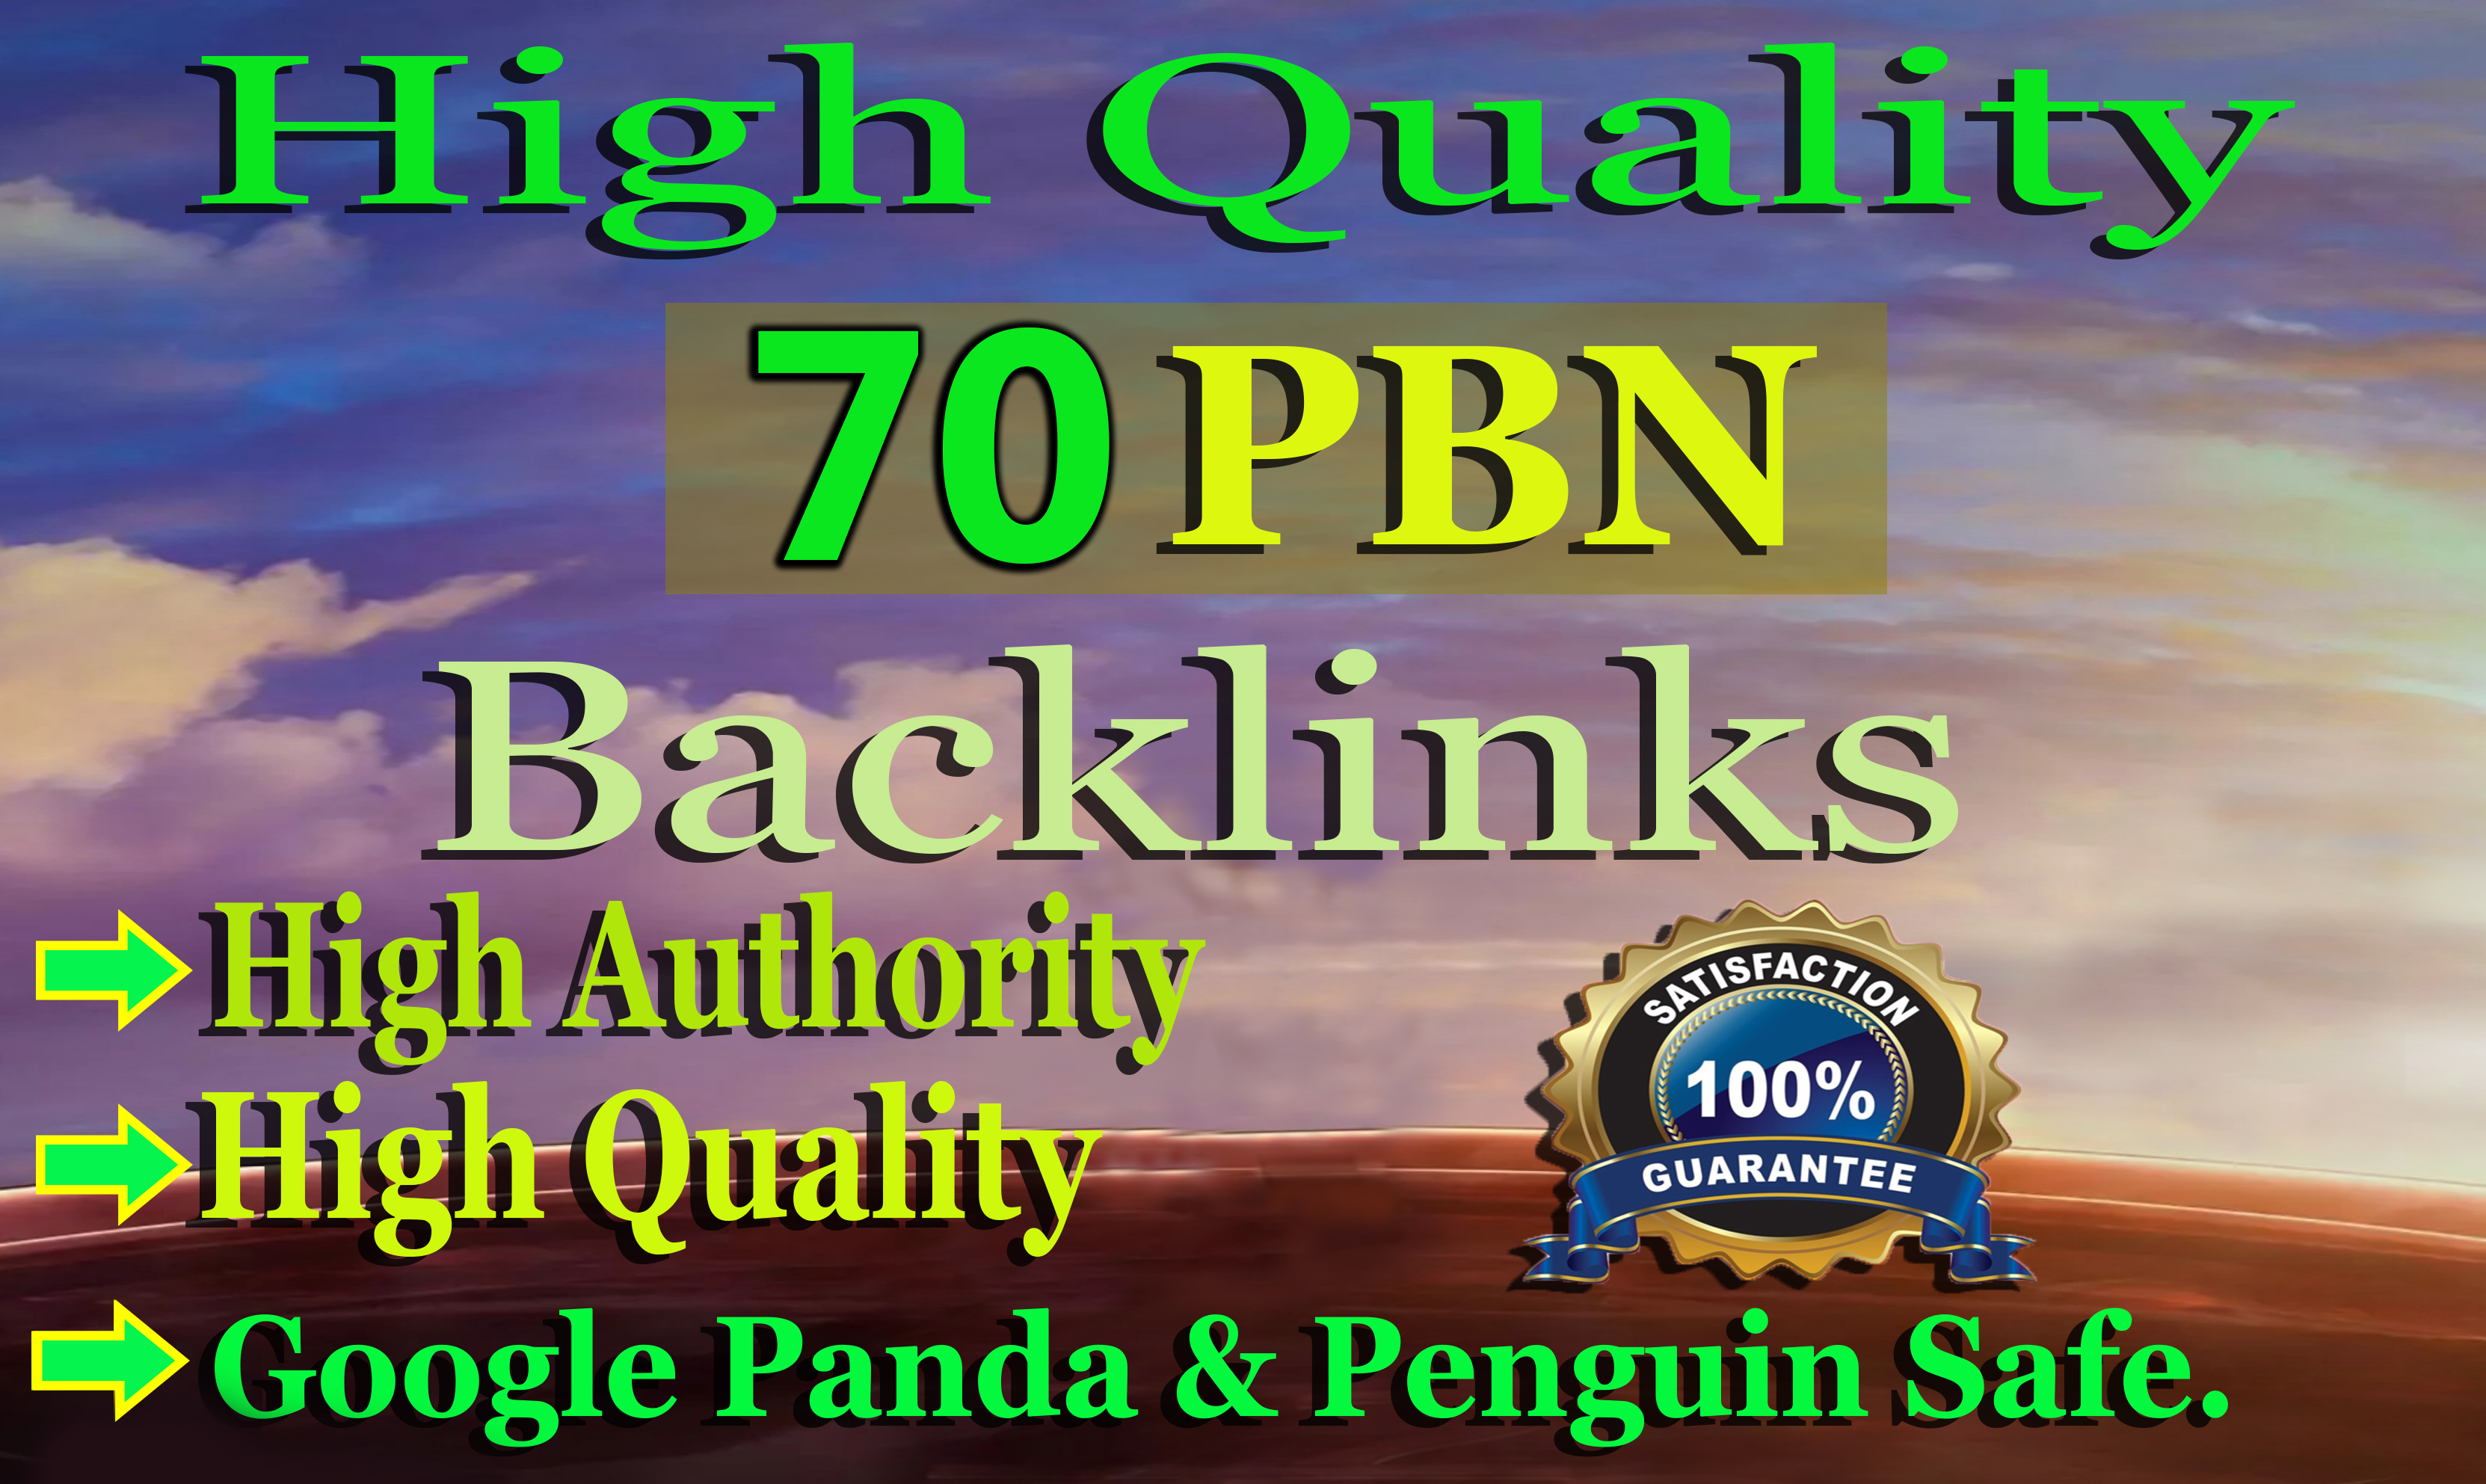 I will do 70 high quality web 2.0 pbn backlinks for your website ranking